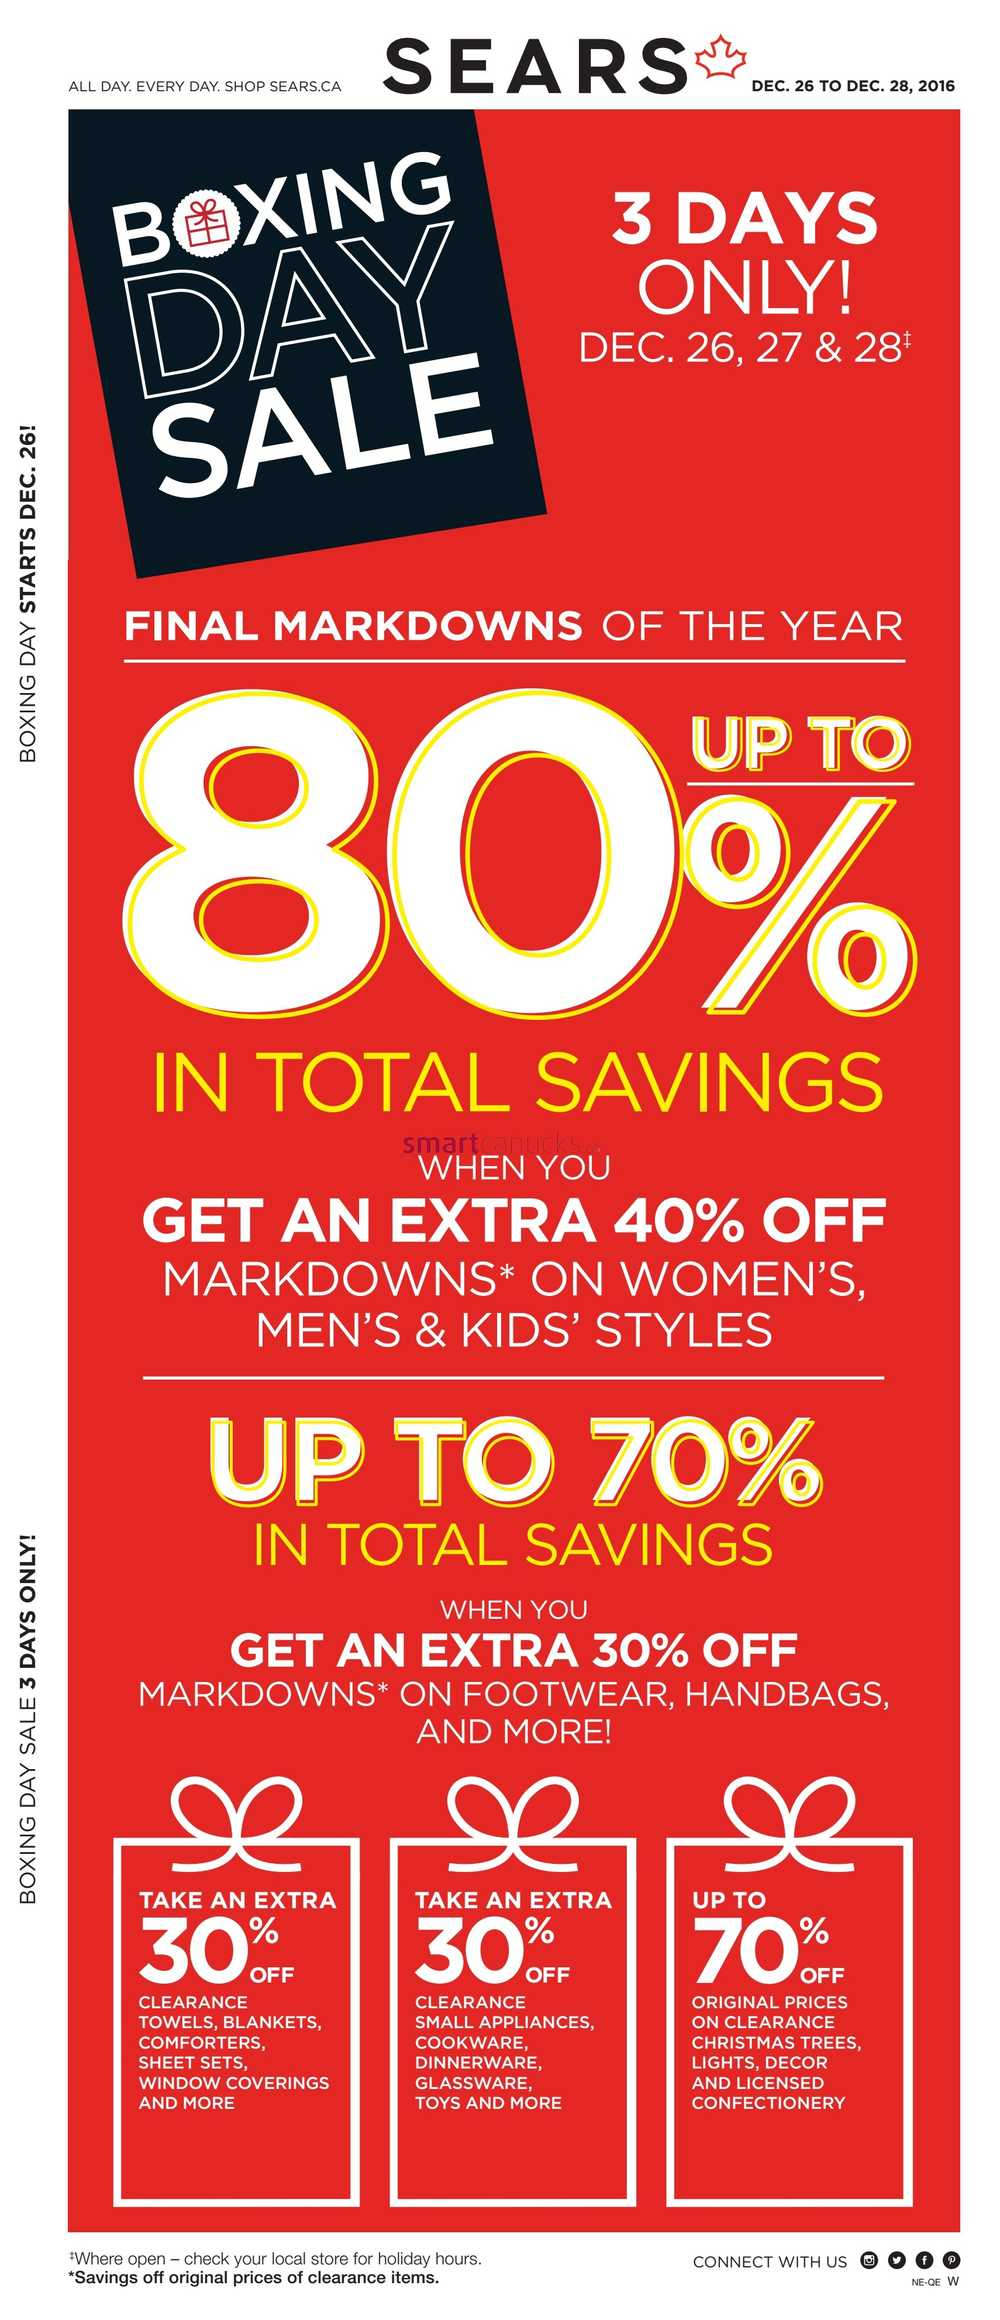 Sears Boxing Day Sale Flyer December 26 to 28